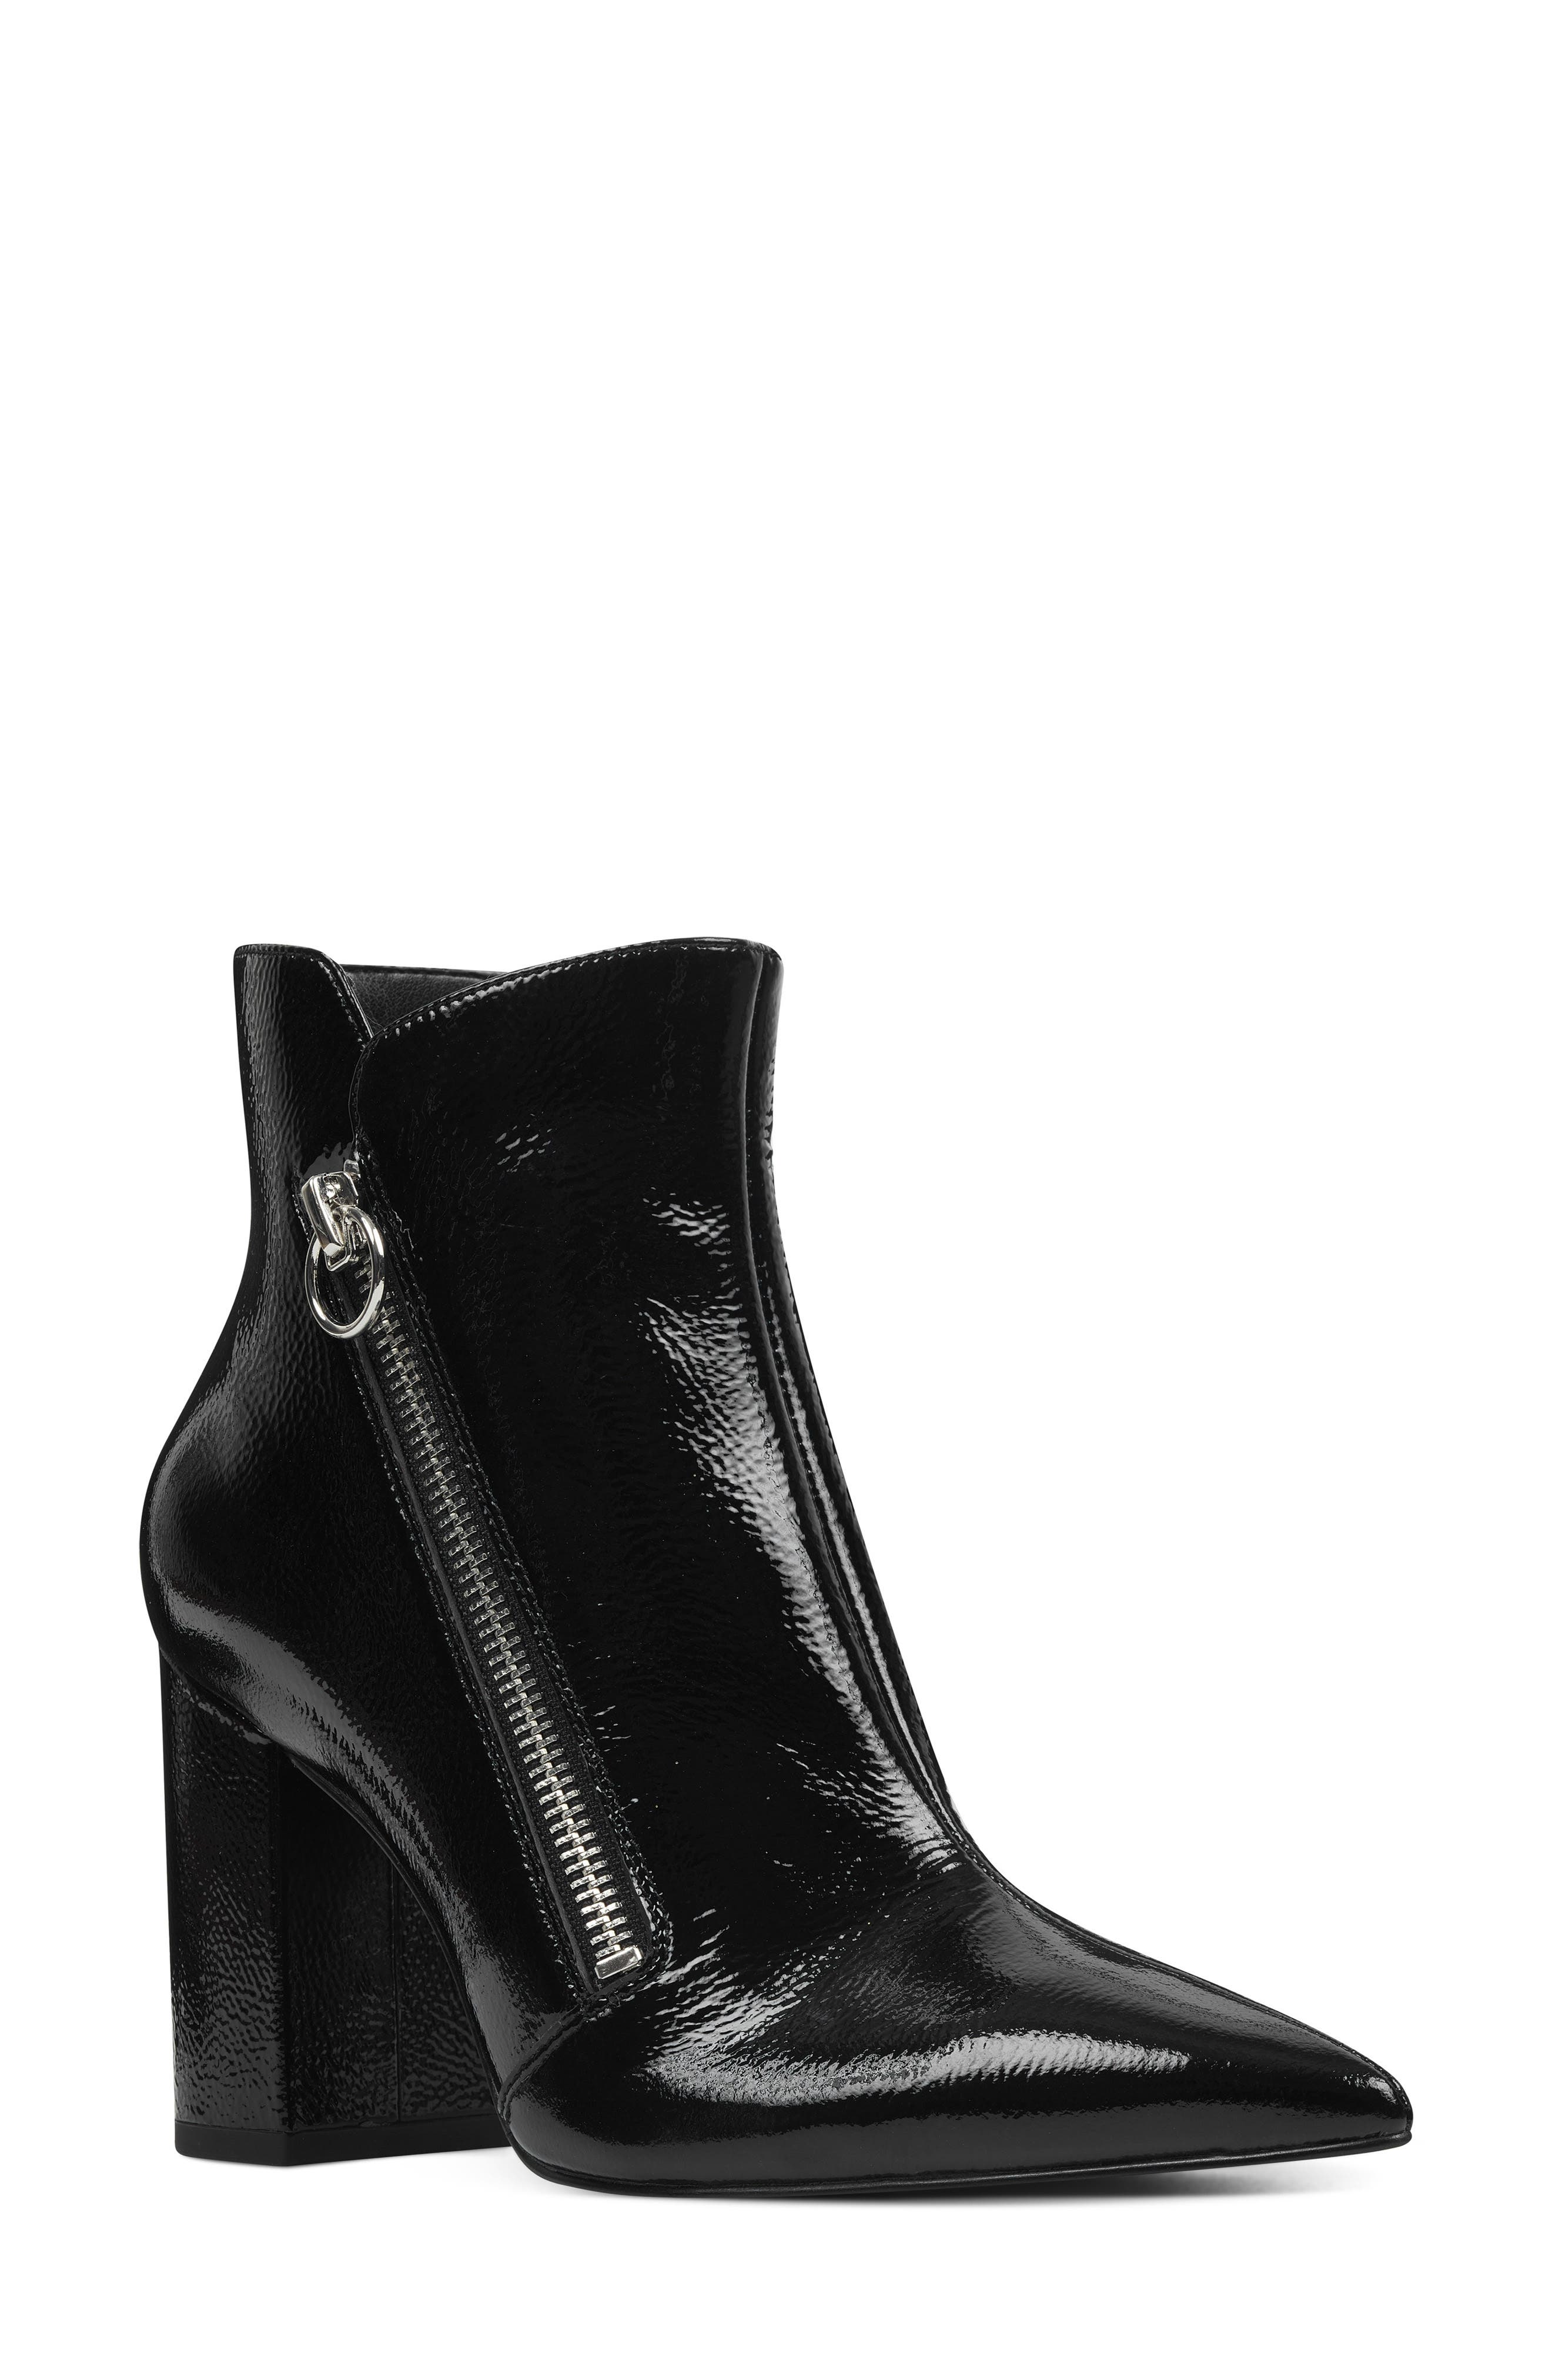 Nine West Russity Angle Zip Bootie, Black